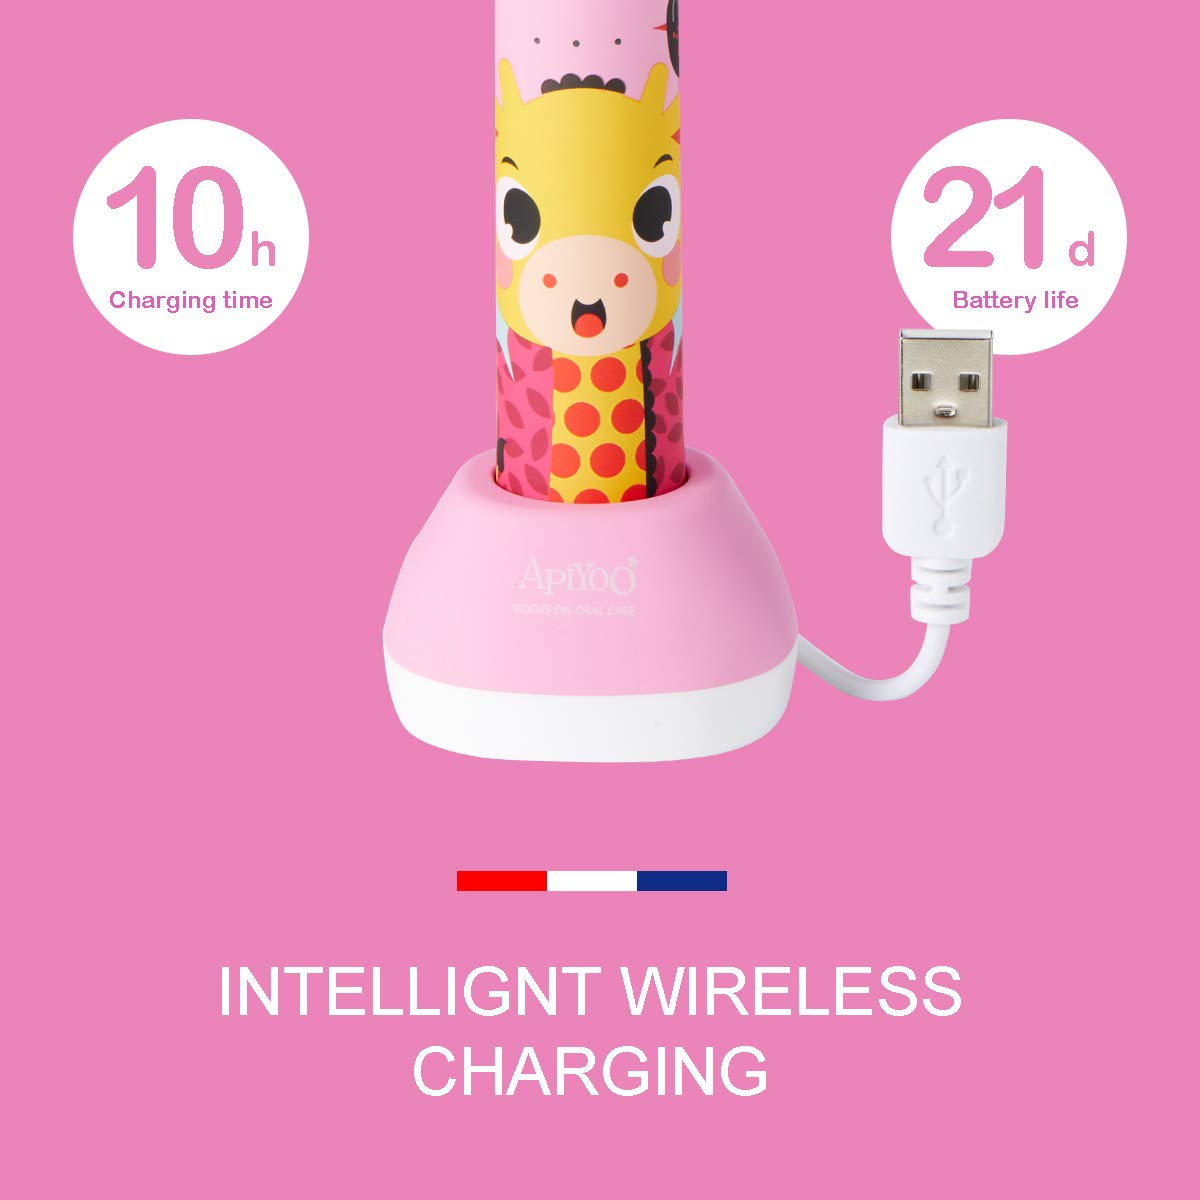 Apiyoo Kids Electric Toothbrush, A7 Sonic Wireless Rechargeable Toothbrush, IPX7 Waterproof with 3 Brushing Modes, 2 Min Smart Timer for Kids. (Pink) by Apiyoo (Image #6)